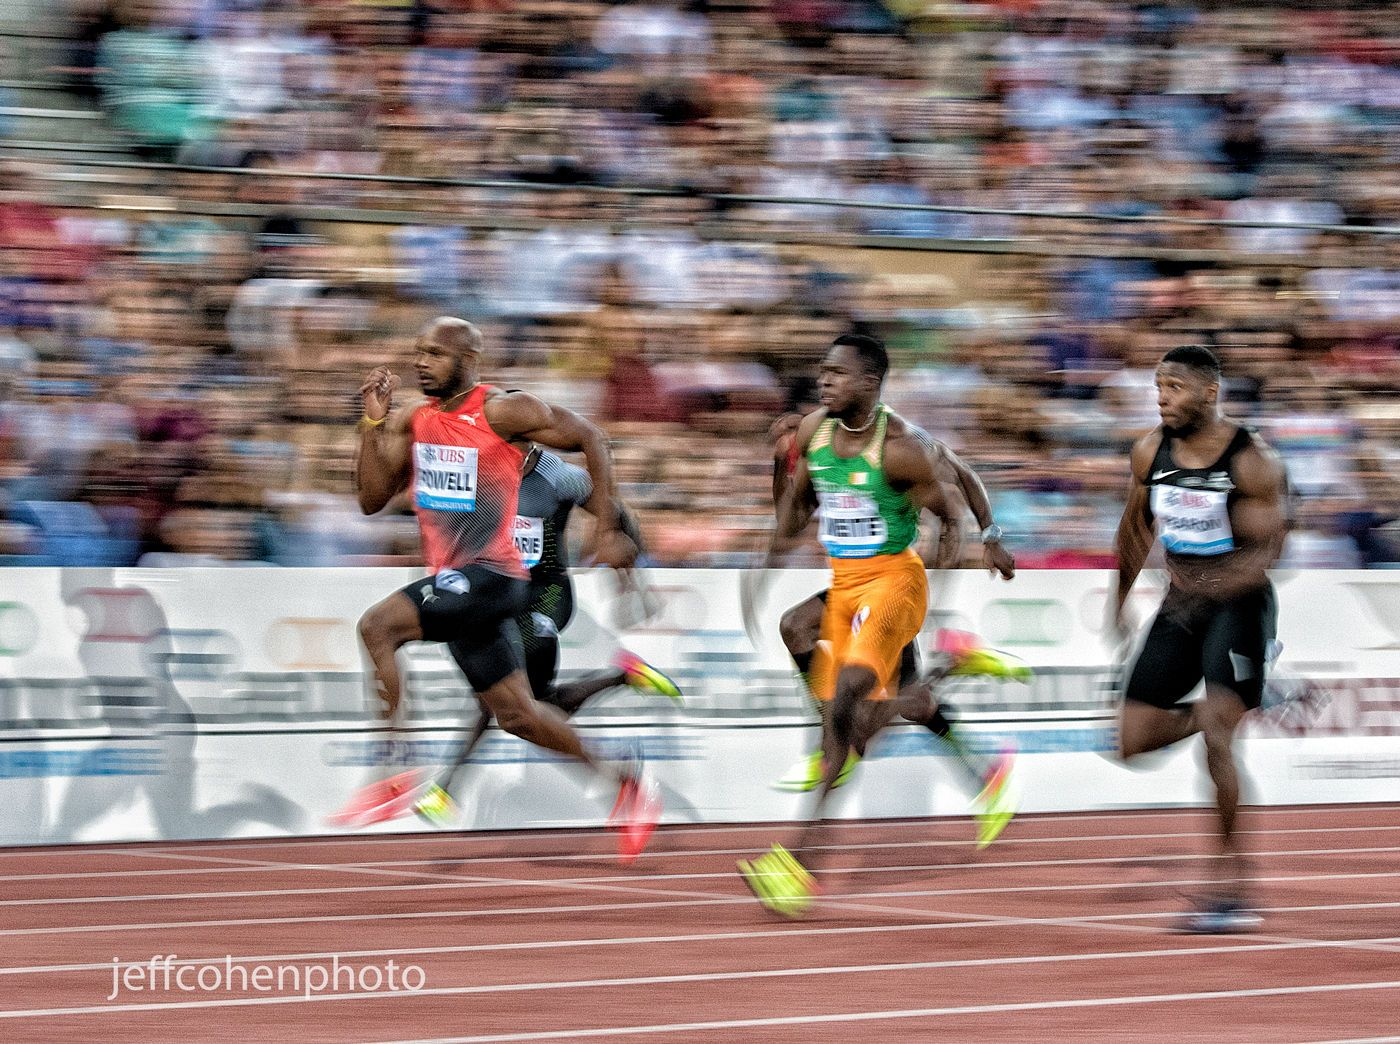 1r2016_athletissima_lausanne_powell_100m_jeff_cohen_photo_1087_web.jpg